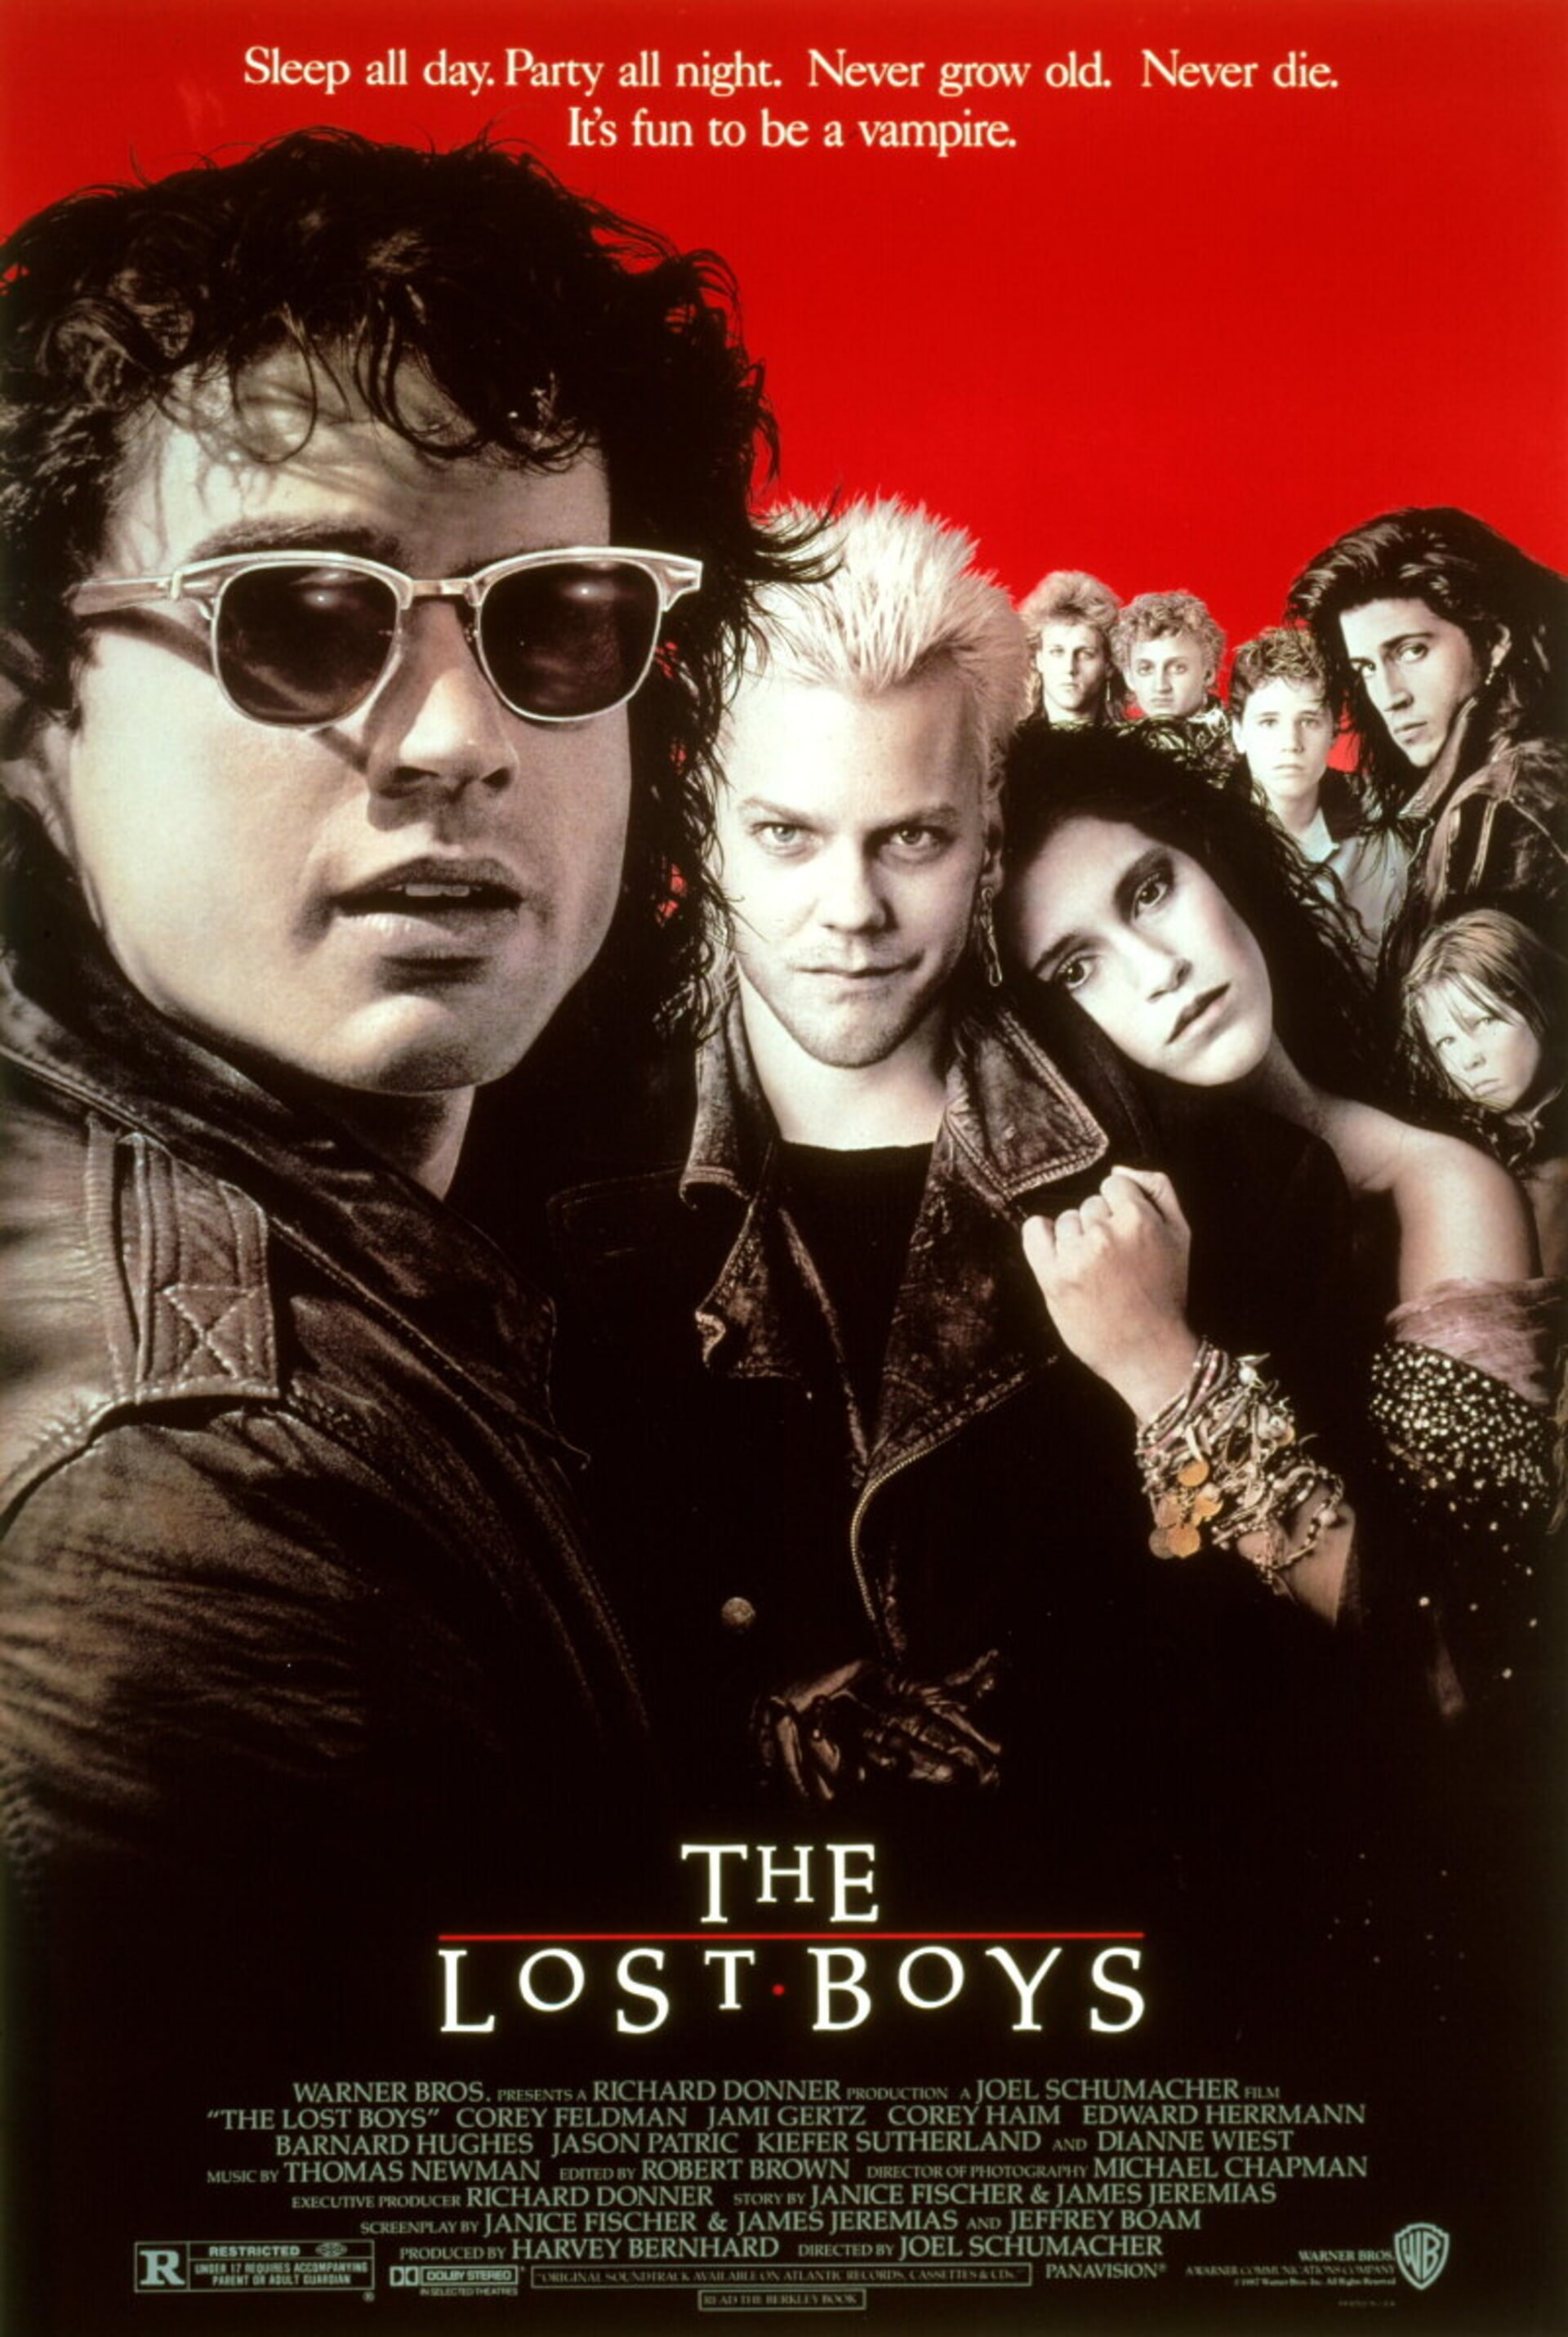 The Lost Boys - Poster 1